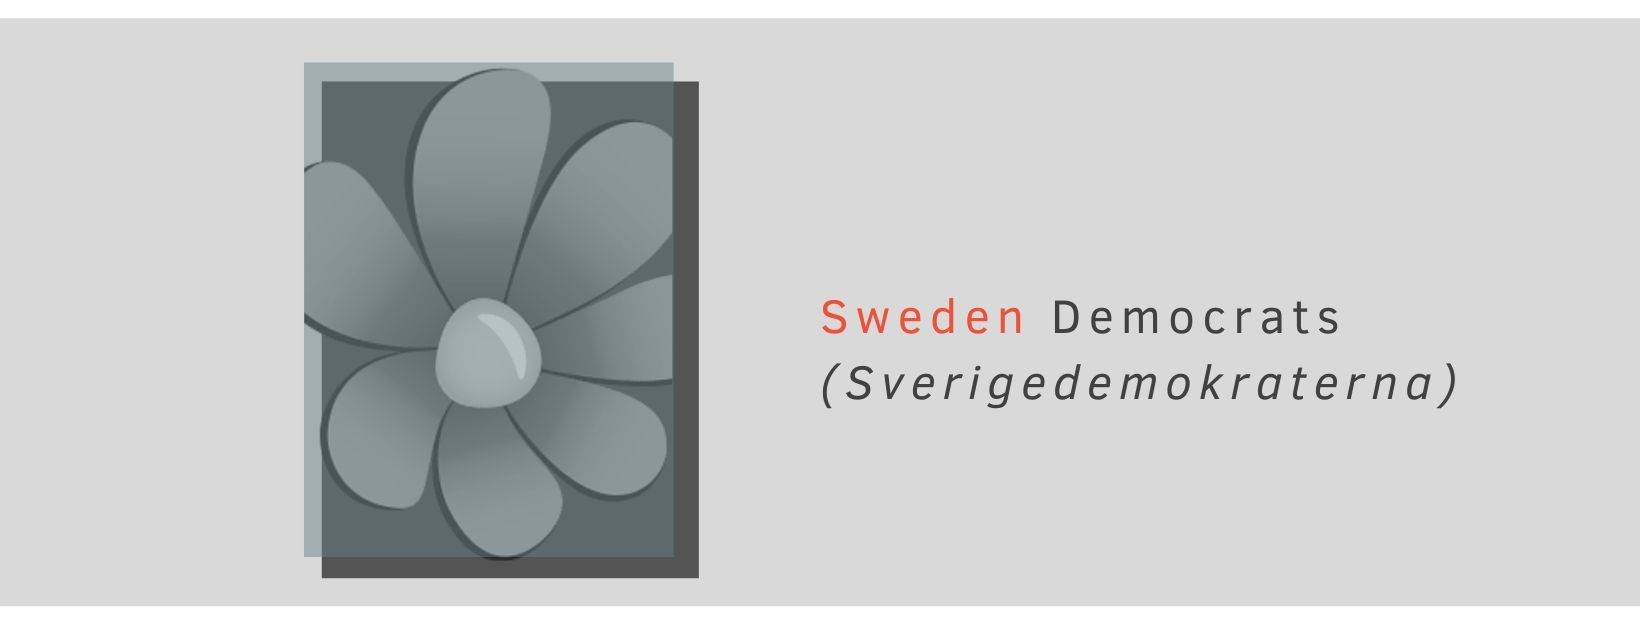 Logo of Sweden Democrats, a Swedish far right populist party